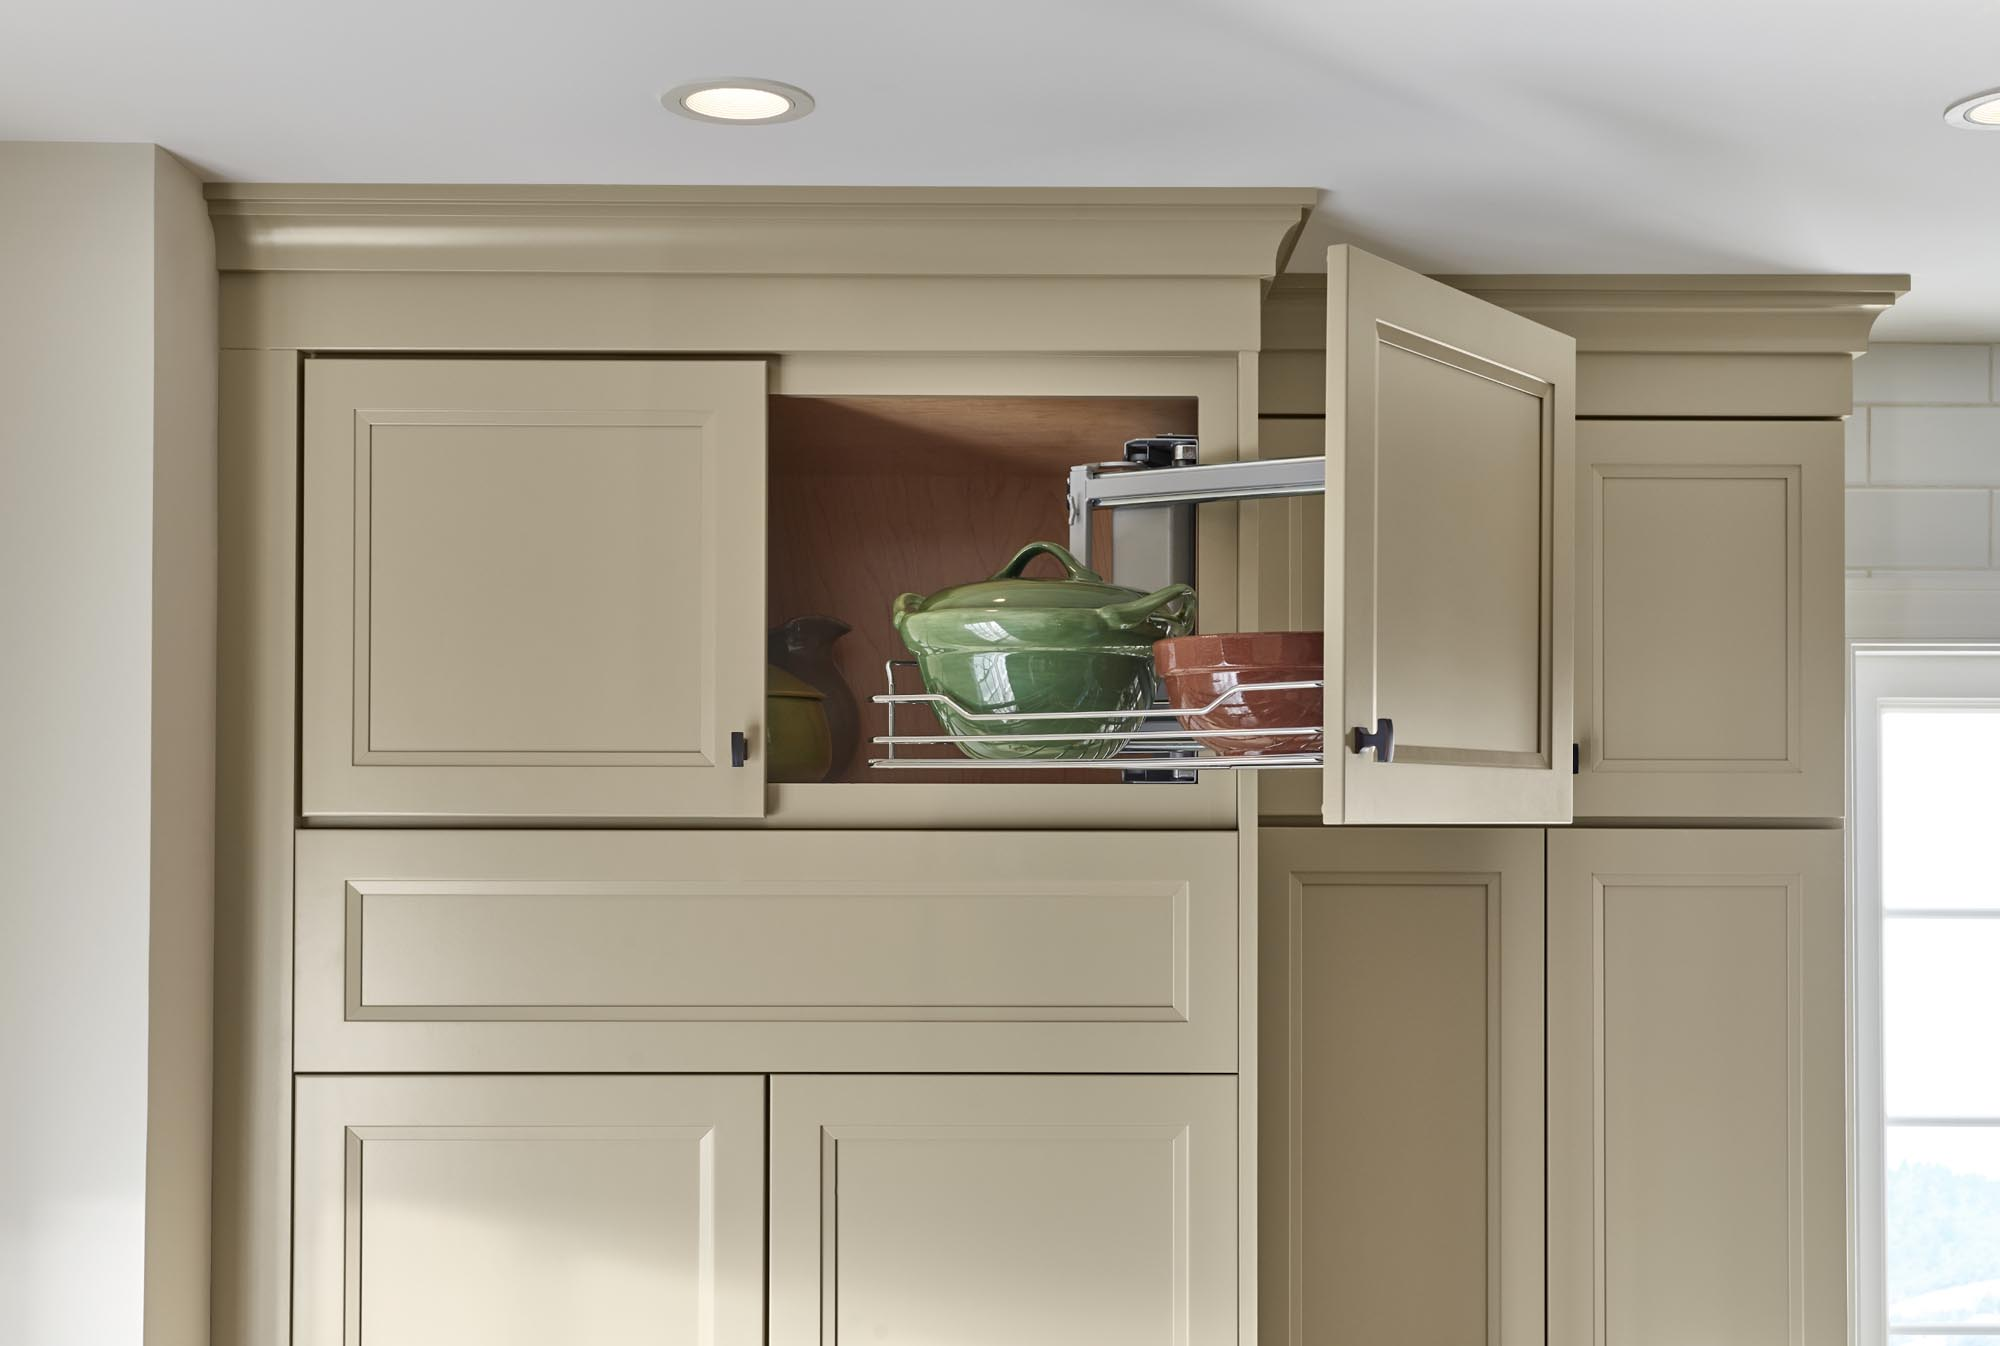 Swing-Out Upper Cabinet